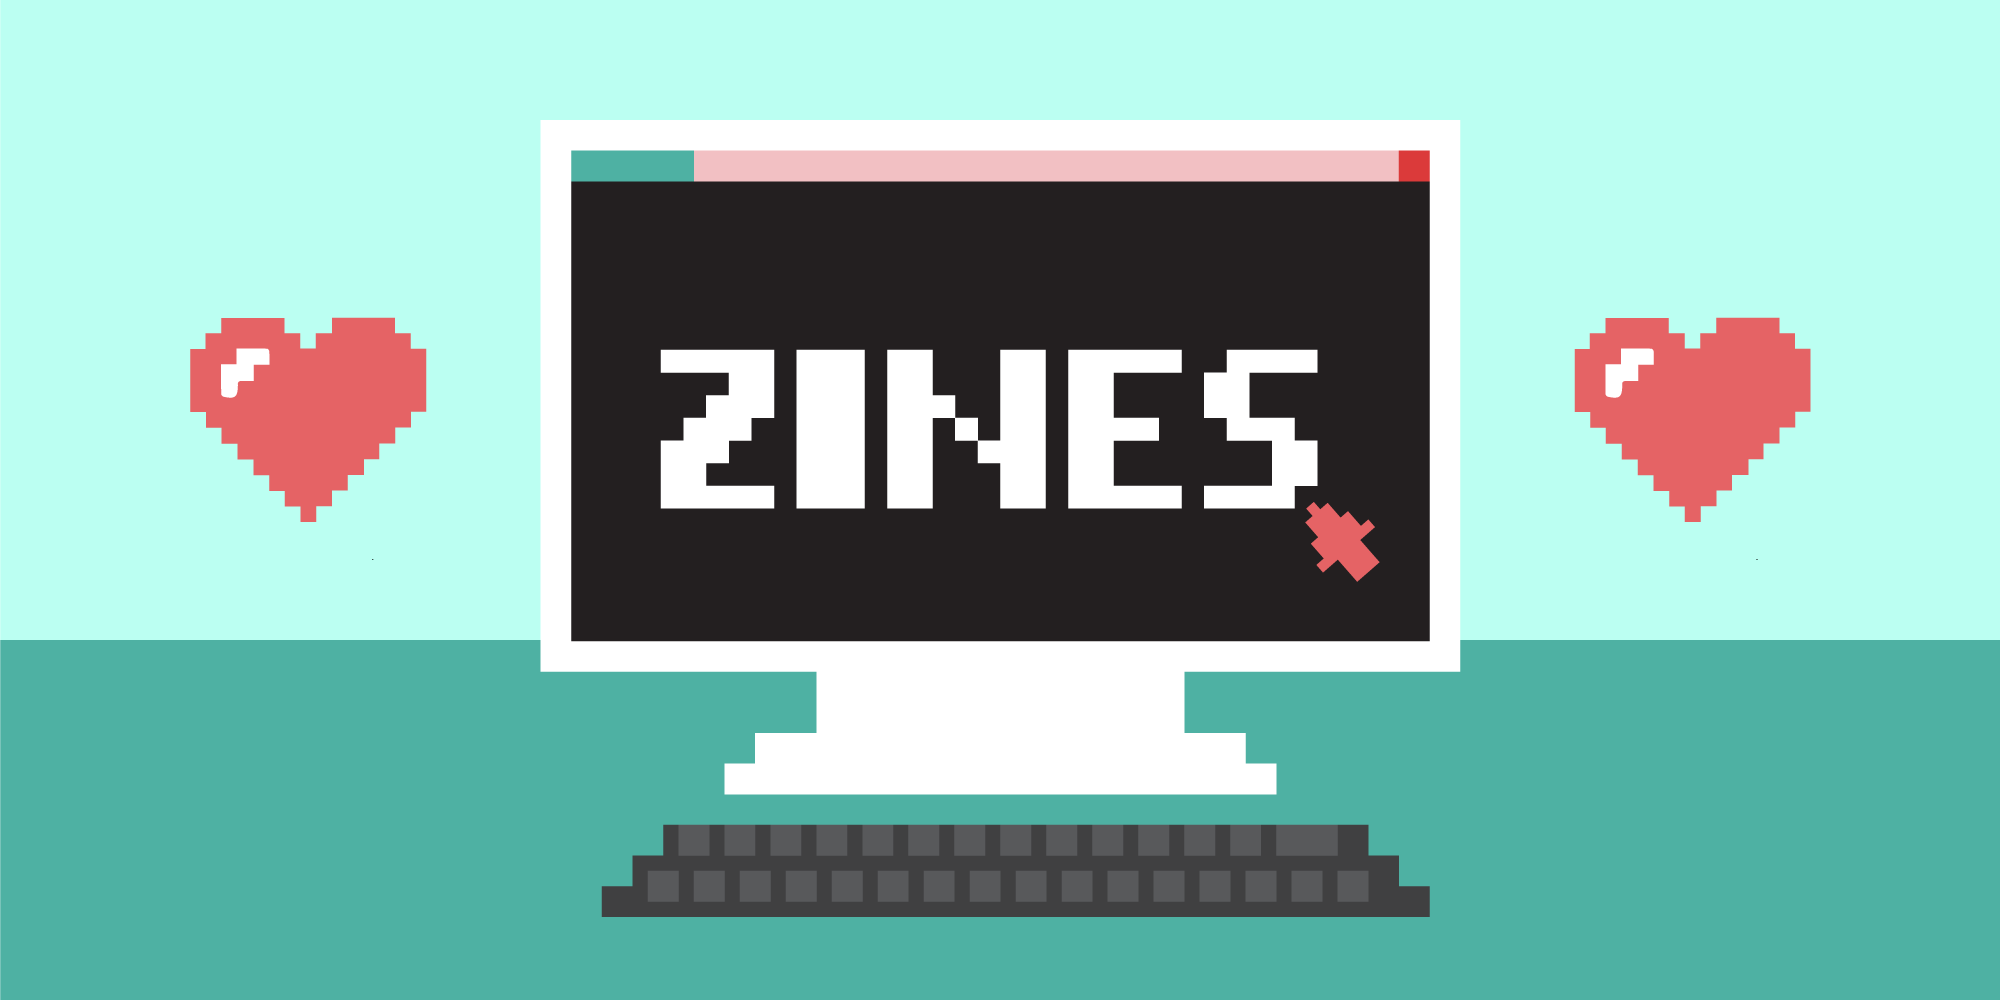 pixel illustration of computer with love heart icons surrounding the word zines